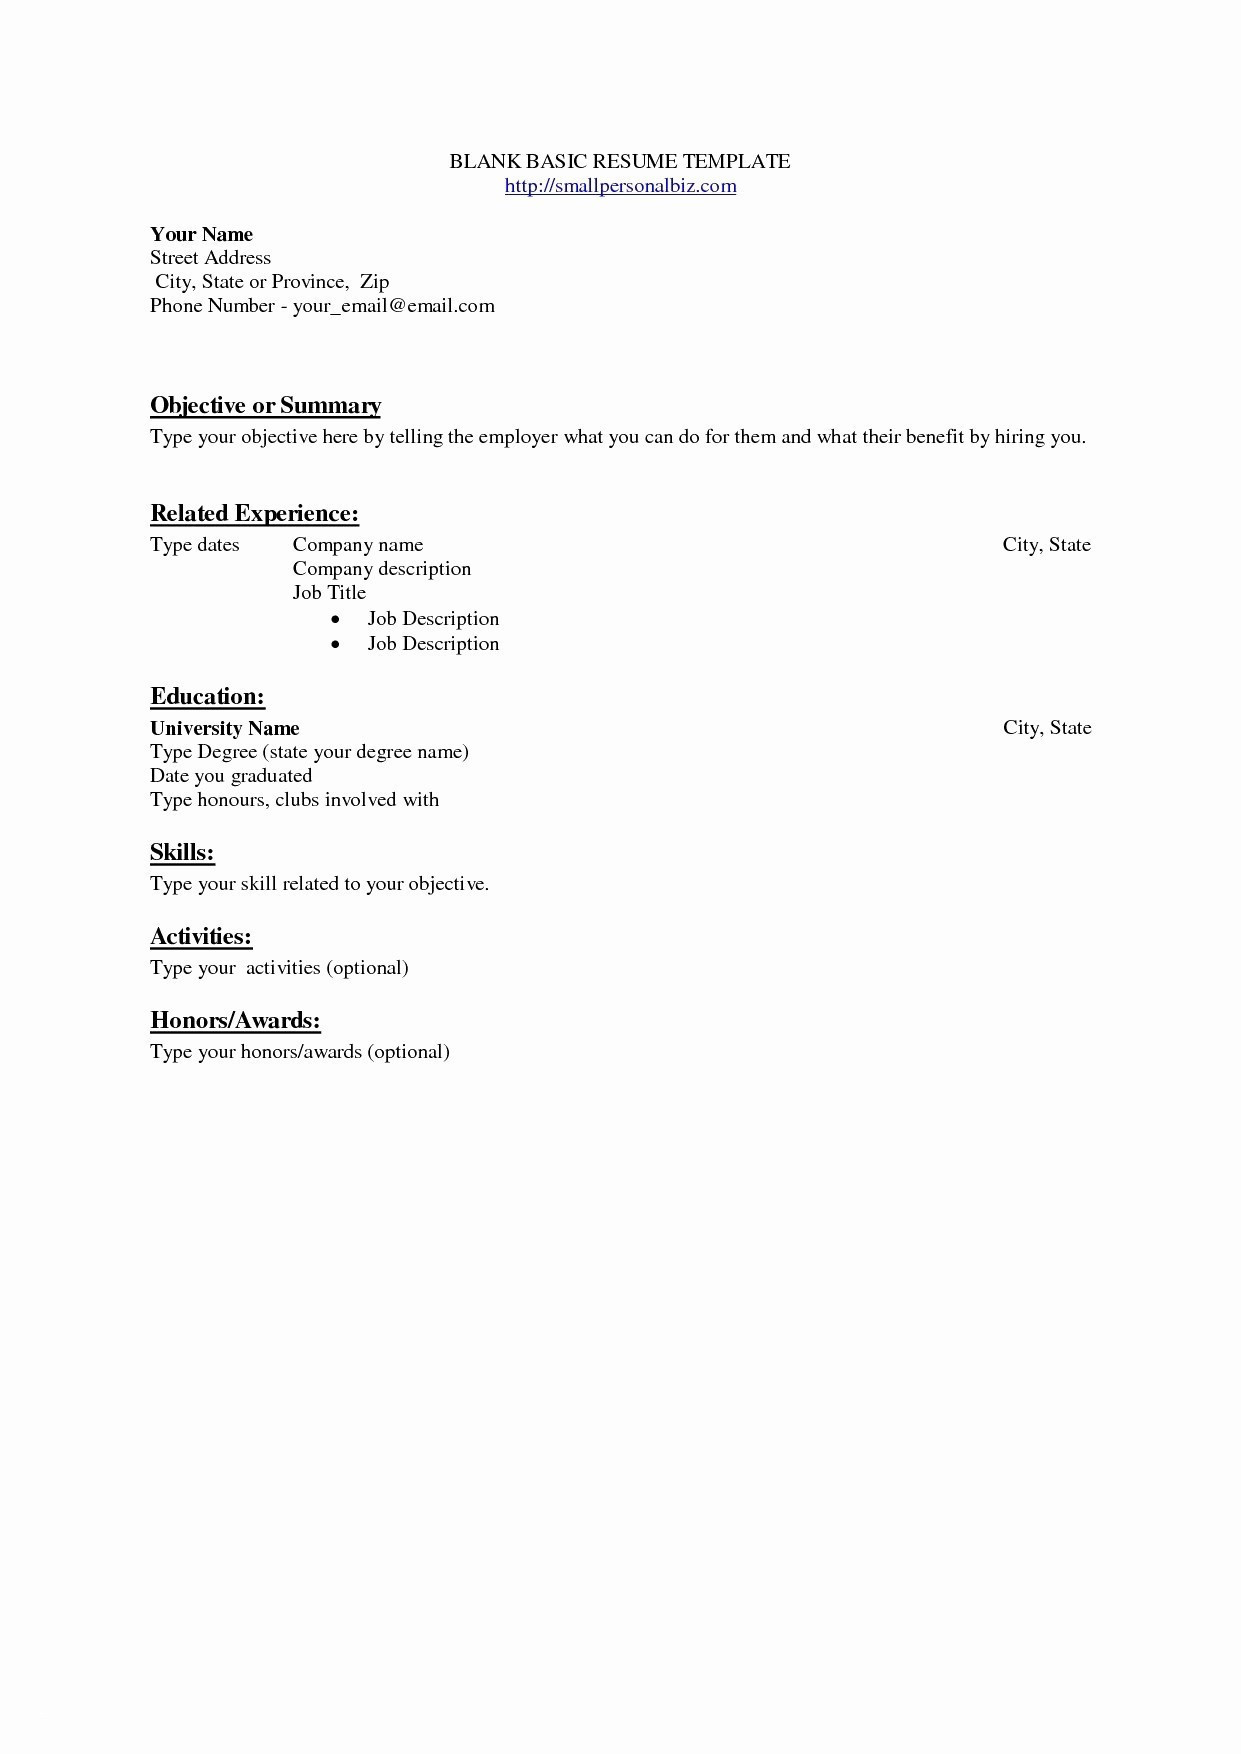 Janitorial Resume Template - Janitor Resume Sample Lovely format for A Resume Luxury Janitor